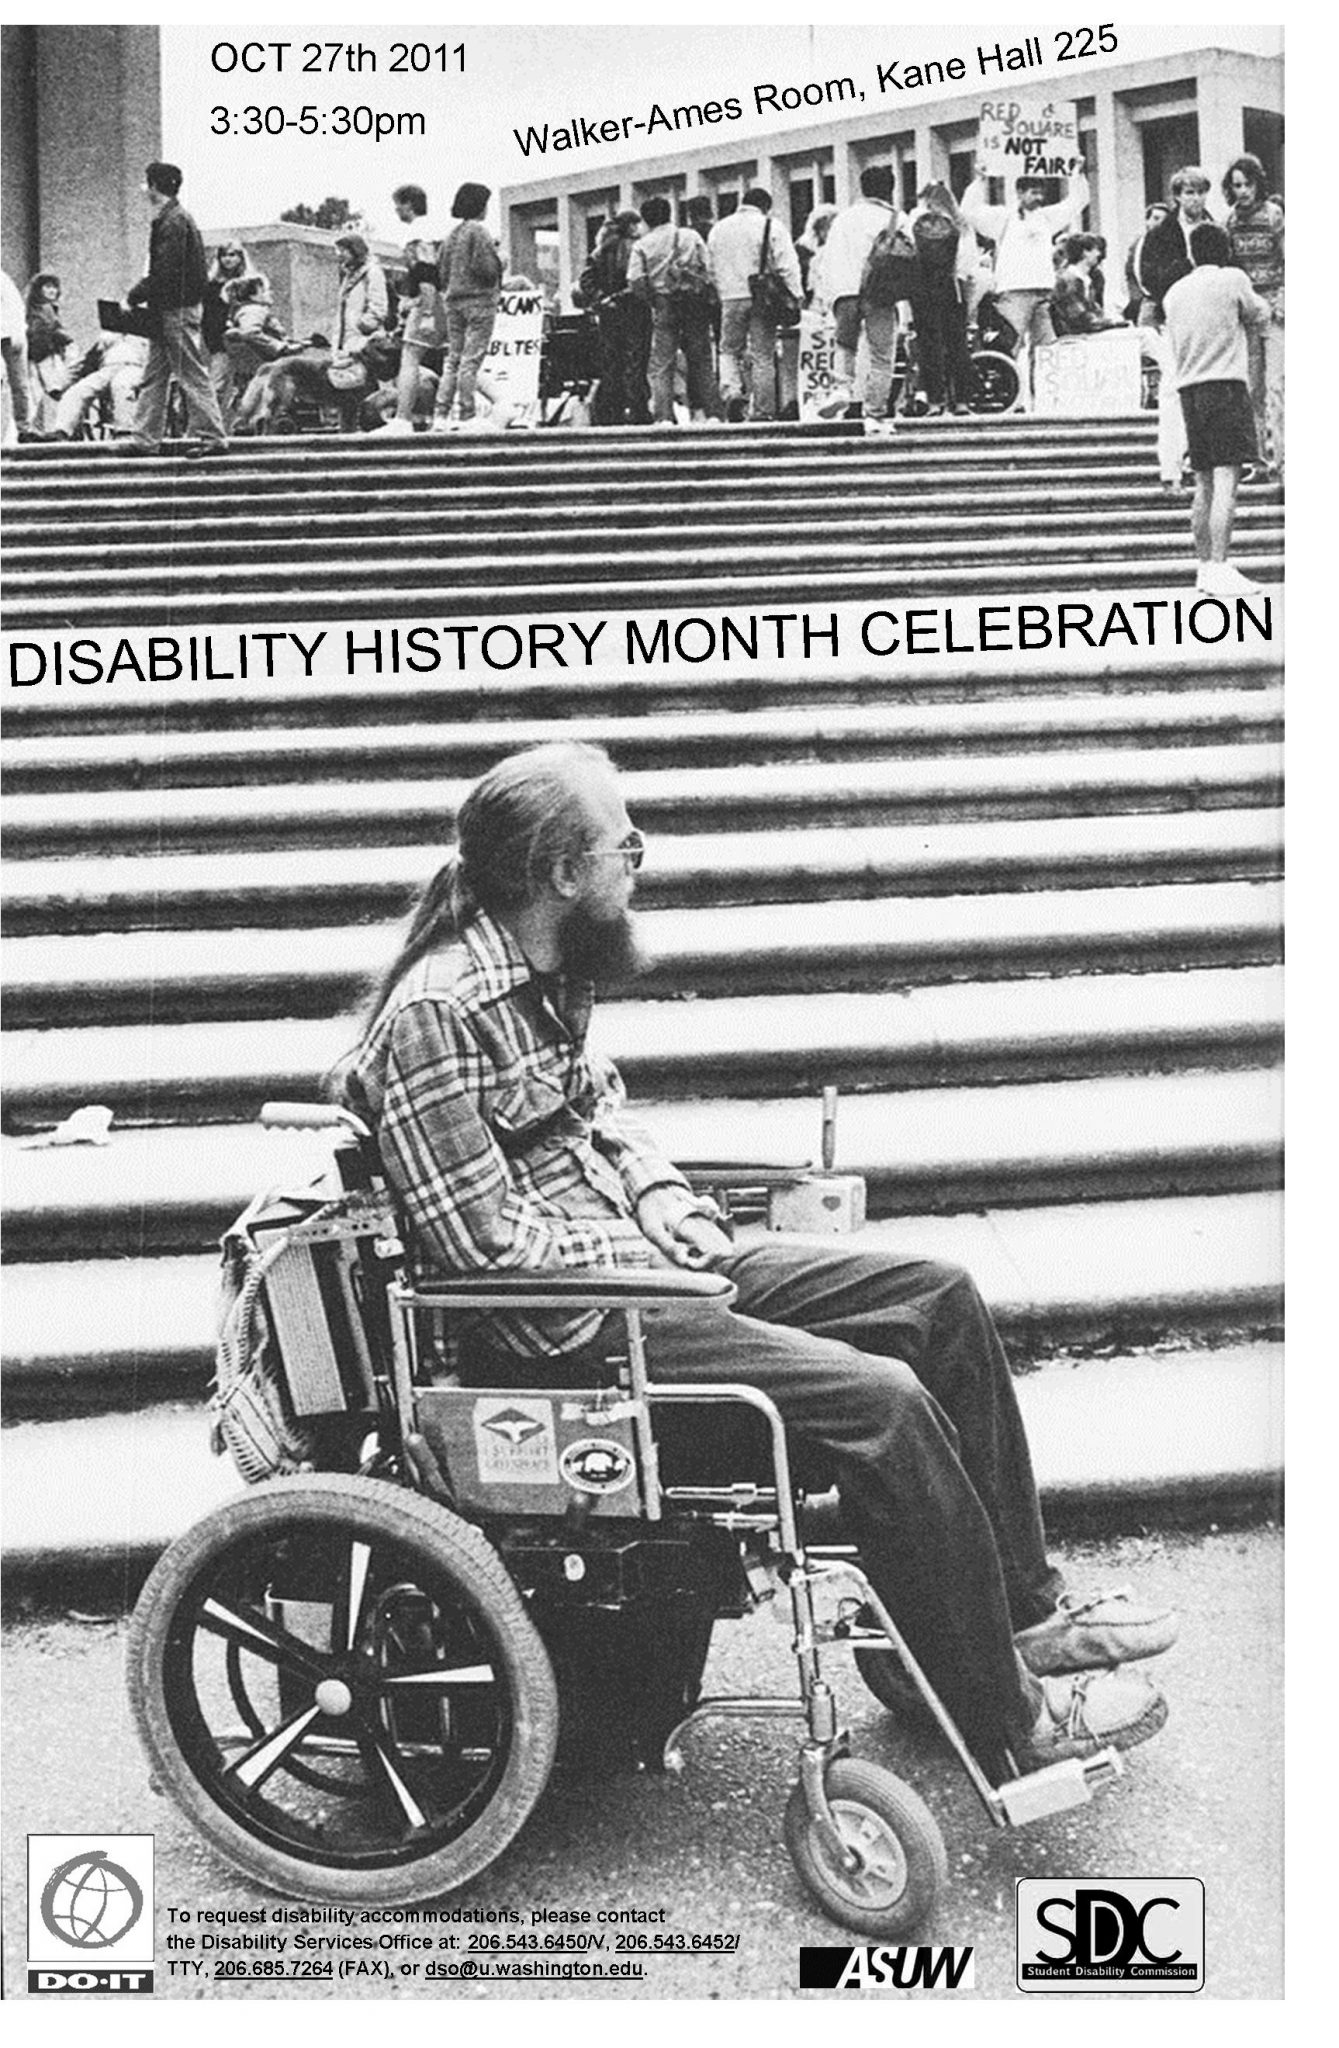 Disability History Month Celebration Oct. 27th 3pm walker-ames room, kane hall